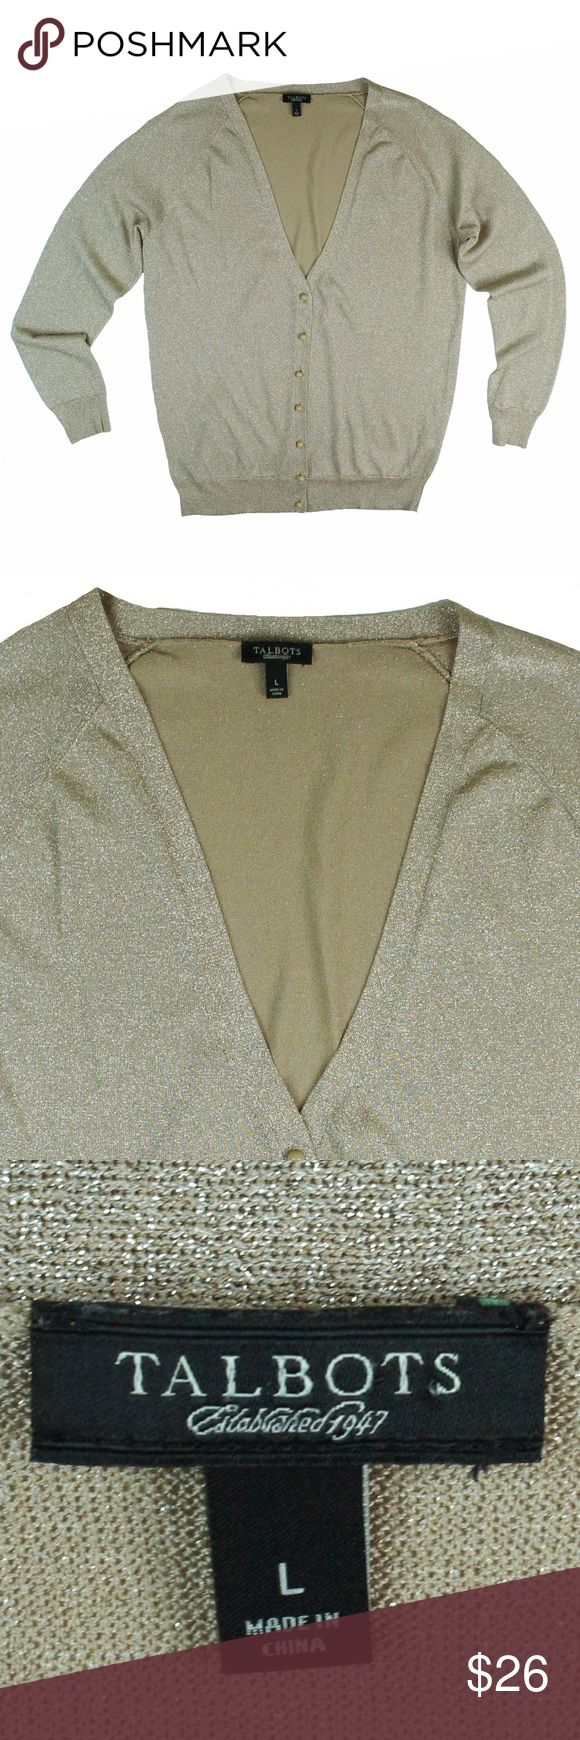 "TALBOTS Champagne Shimer Metallic Cardigan Sweater Mint condition. This champagne shimmer metallic cardigan sweater from Talbots features button closures. Made of a viscose blend. Lightweight knit. Measures: bust: 42"", total length: 27"", sleeves: 25"" Talbots Sweaters Cardigans"